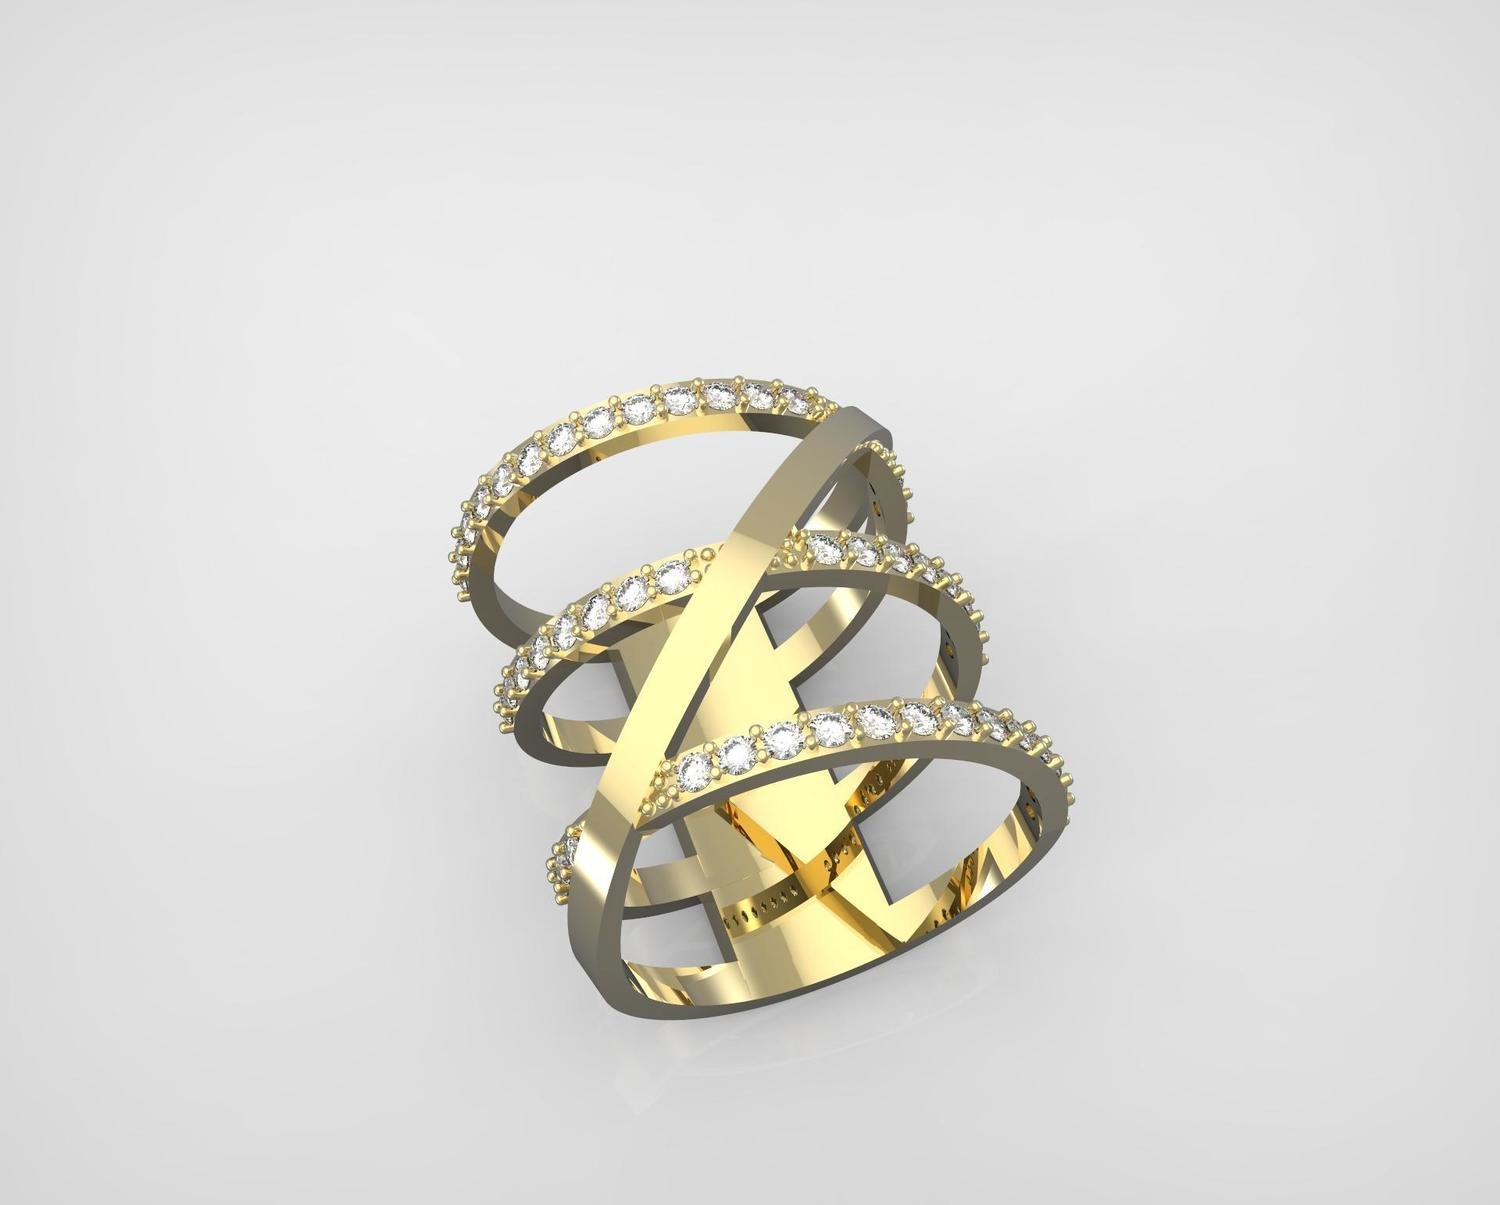 3D CAD Model of Gold and Diamond  Ring